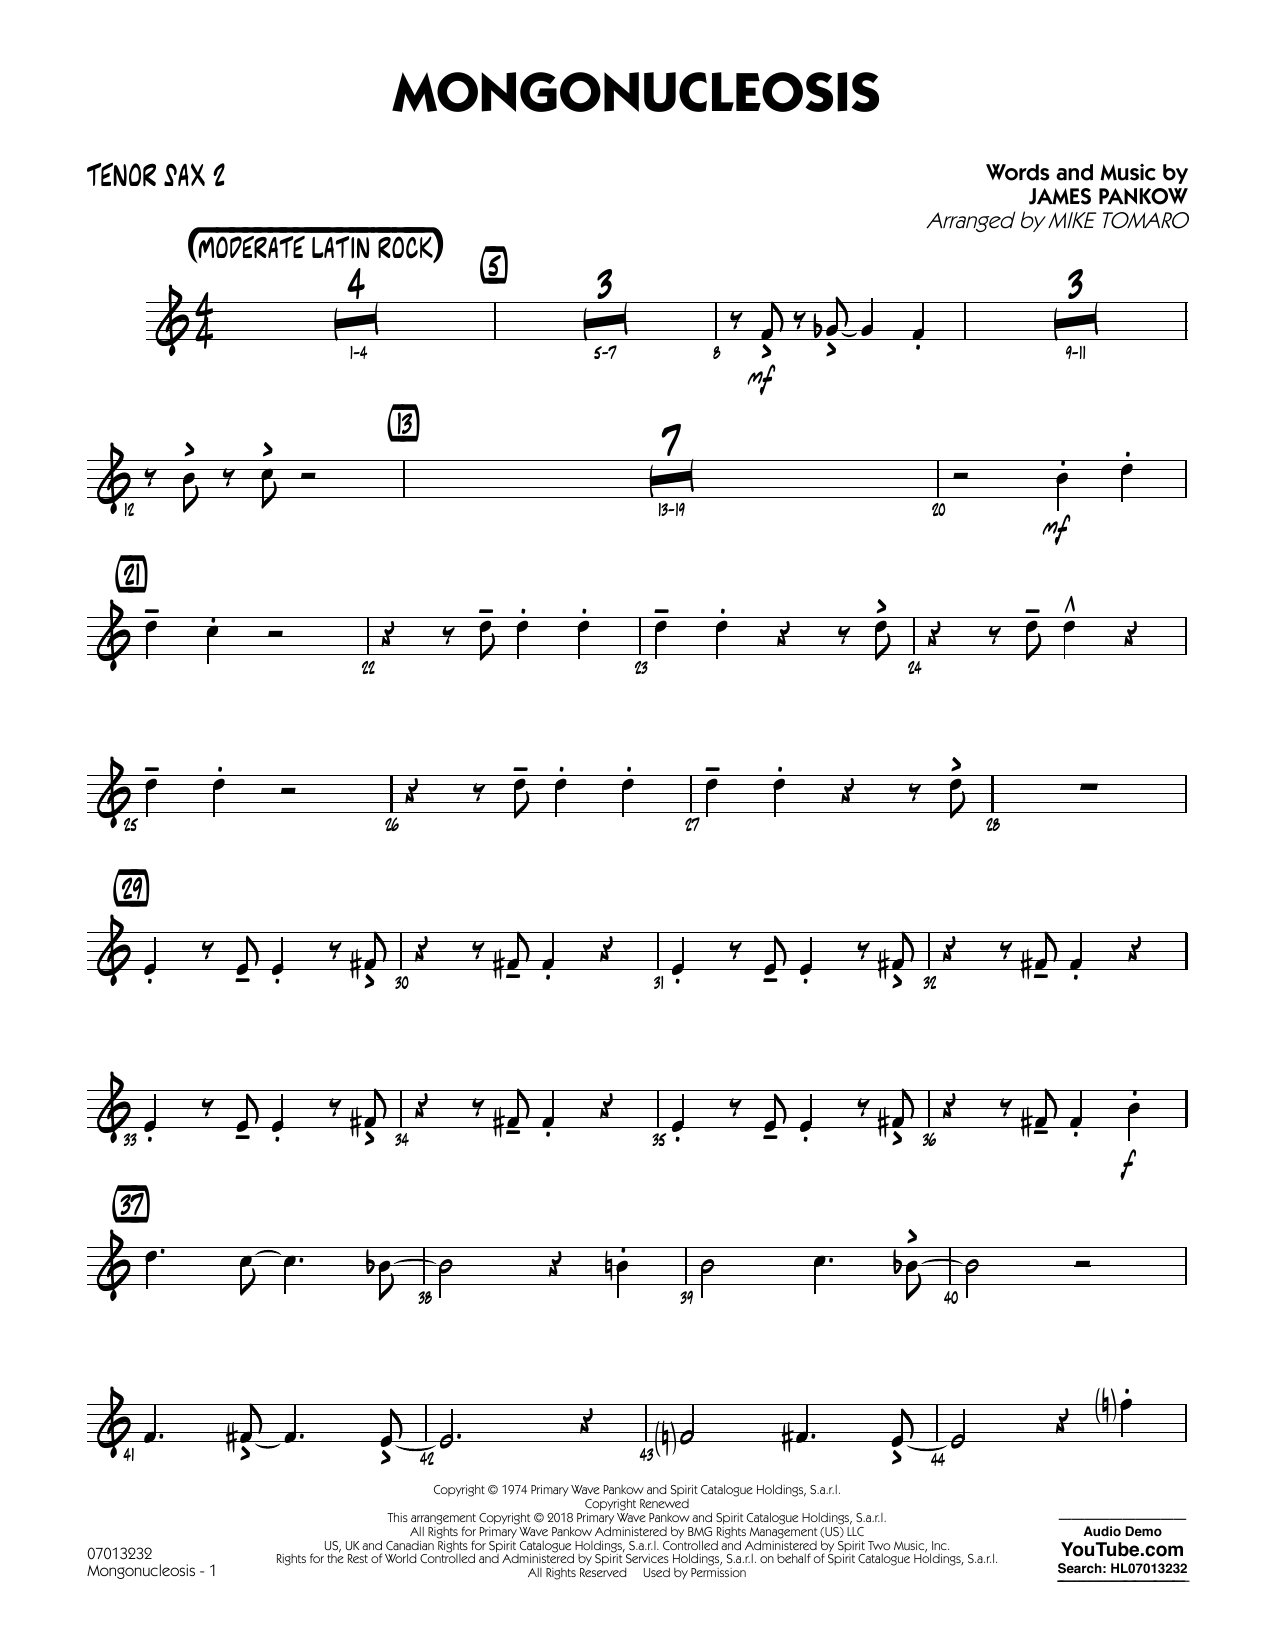 Chicago Mongonucleosis (arr. Mike Tomaro) - Tenor Sax 2 sheet music notes and chords